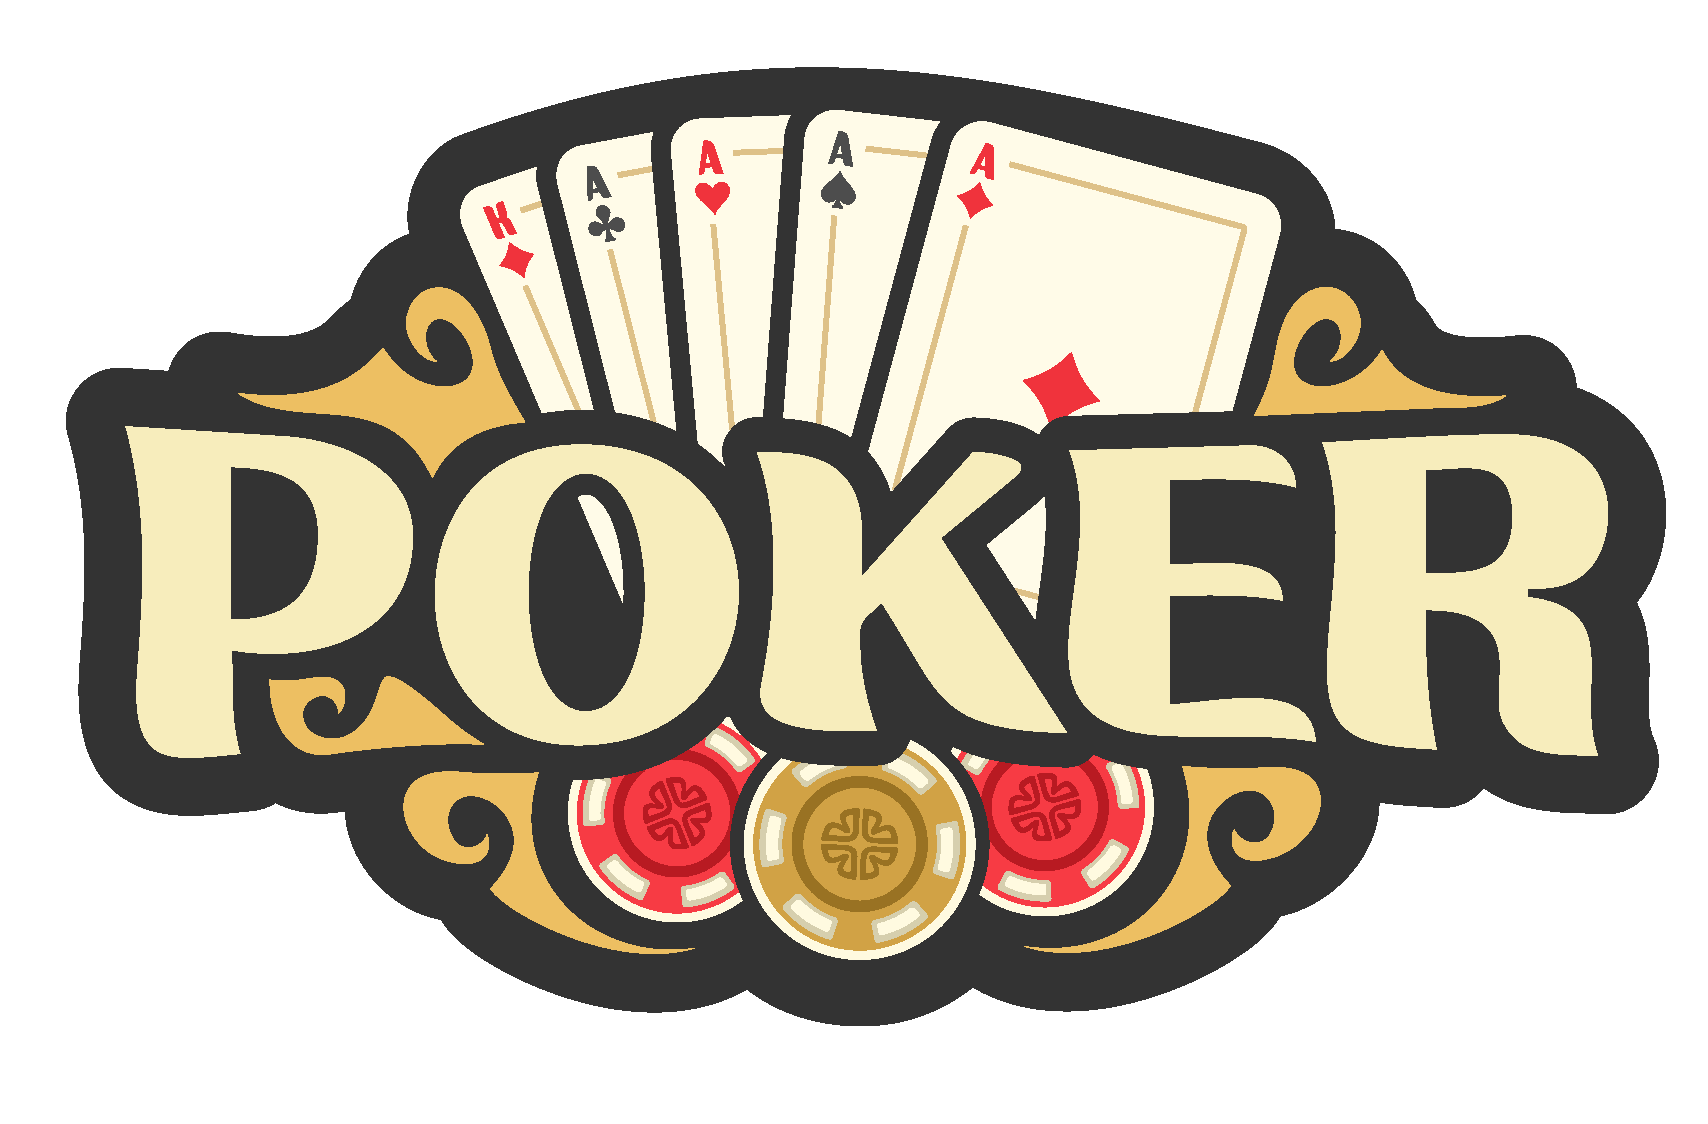 An image of poker text